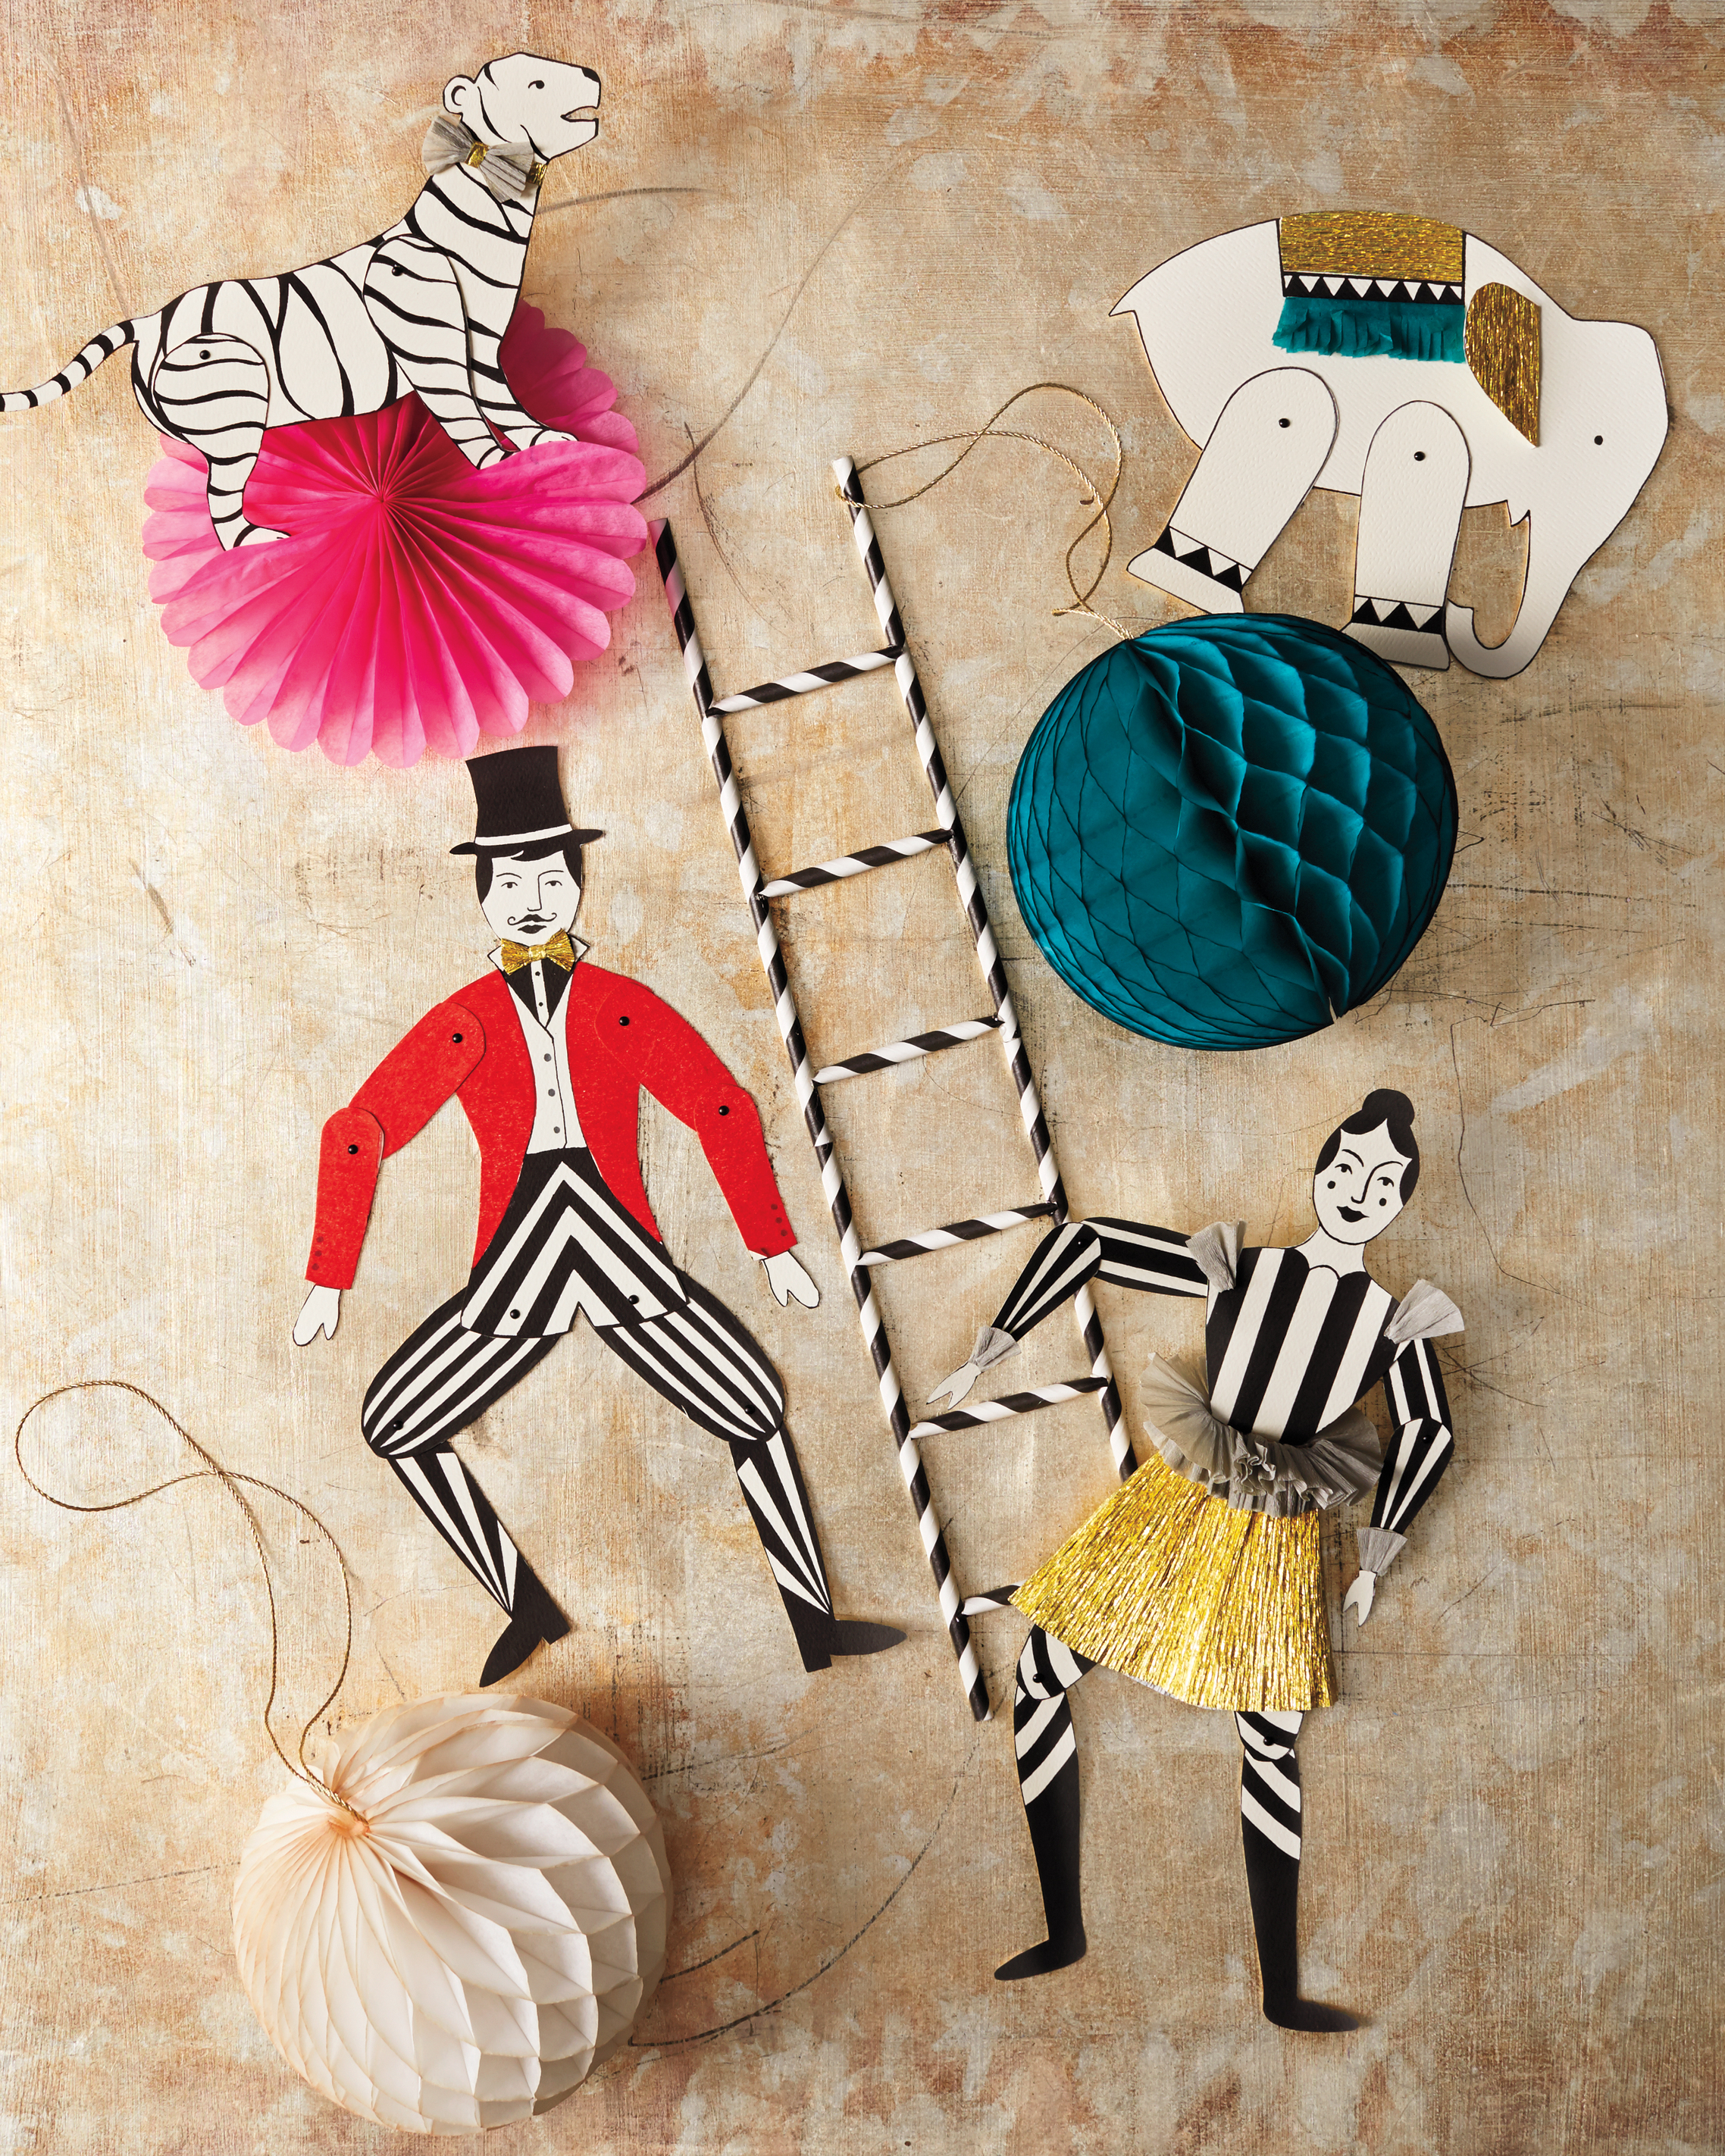 christmas-circus-ornament-still-life-049-d112139.jpg